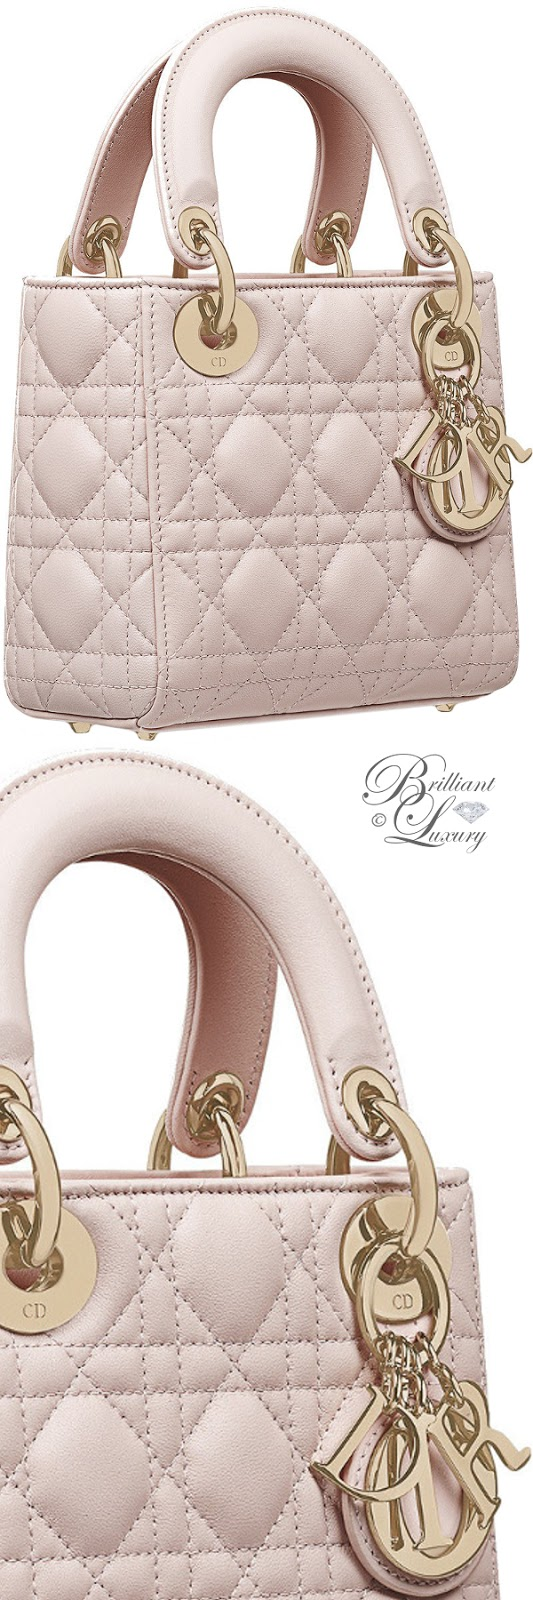 Brilliant Luxury ♦ Mini Lady Dior bag in rose poudre lambskin